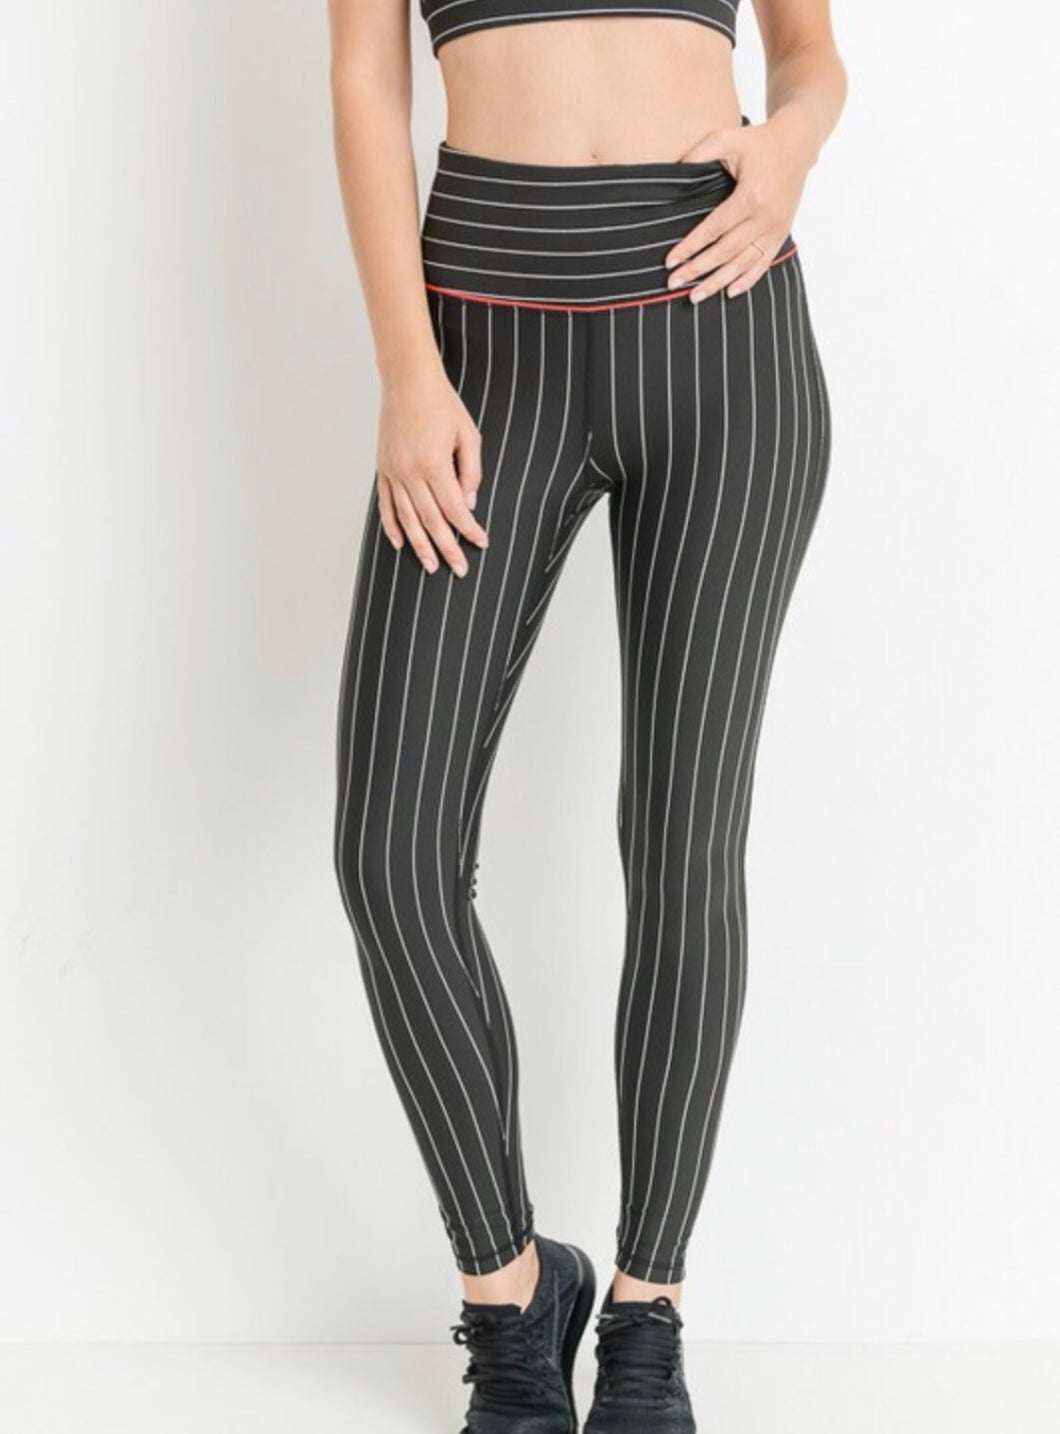 Sleek high waisted workout pants